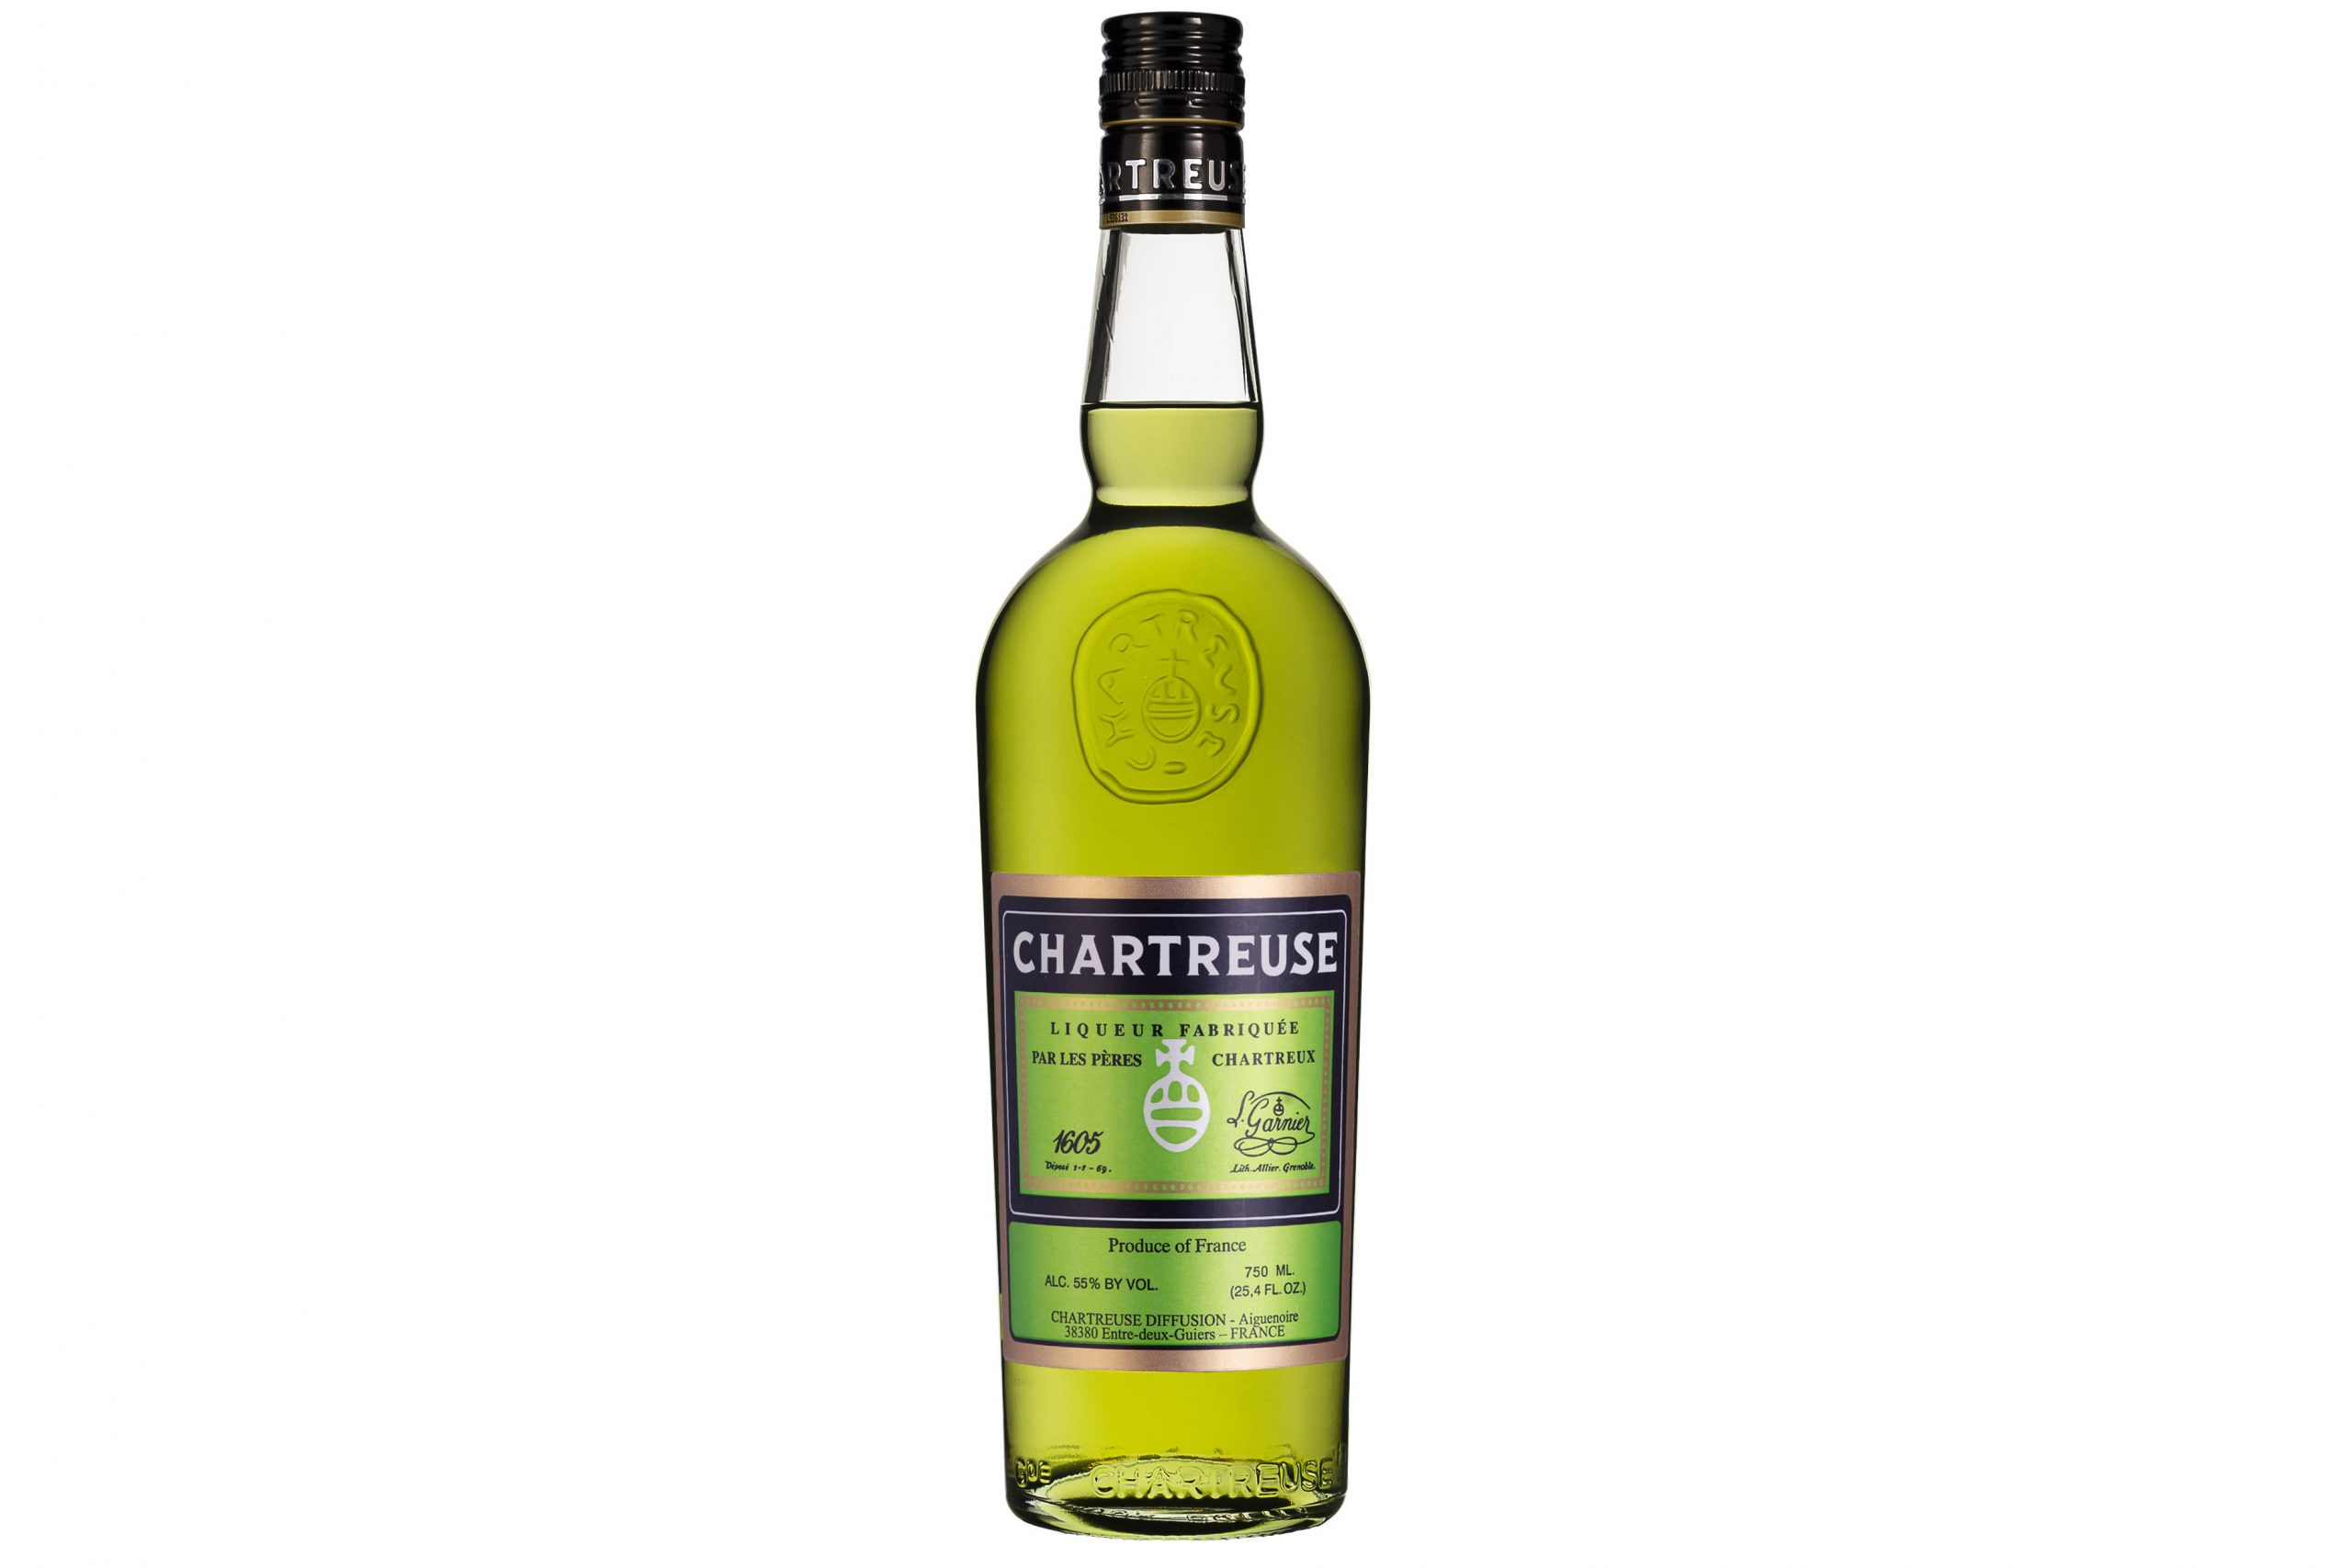 Green Chartreuse has been made for hundreds of years and its recipe has been passed down for generations